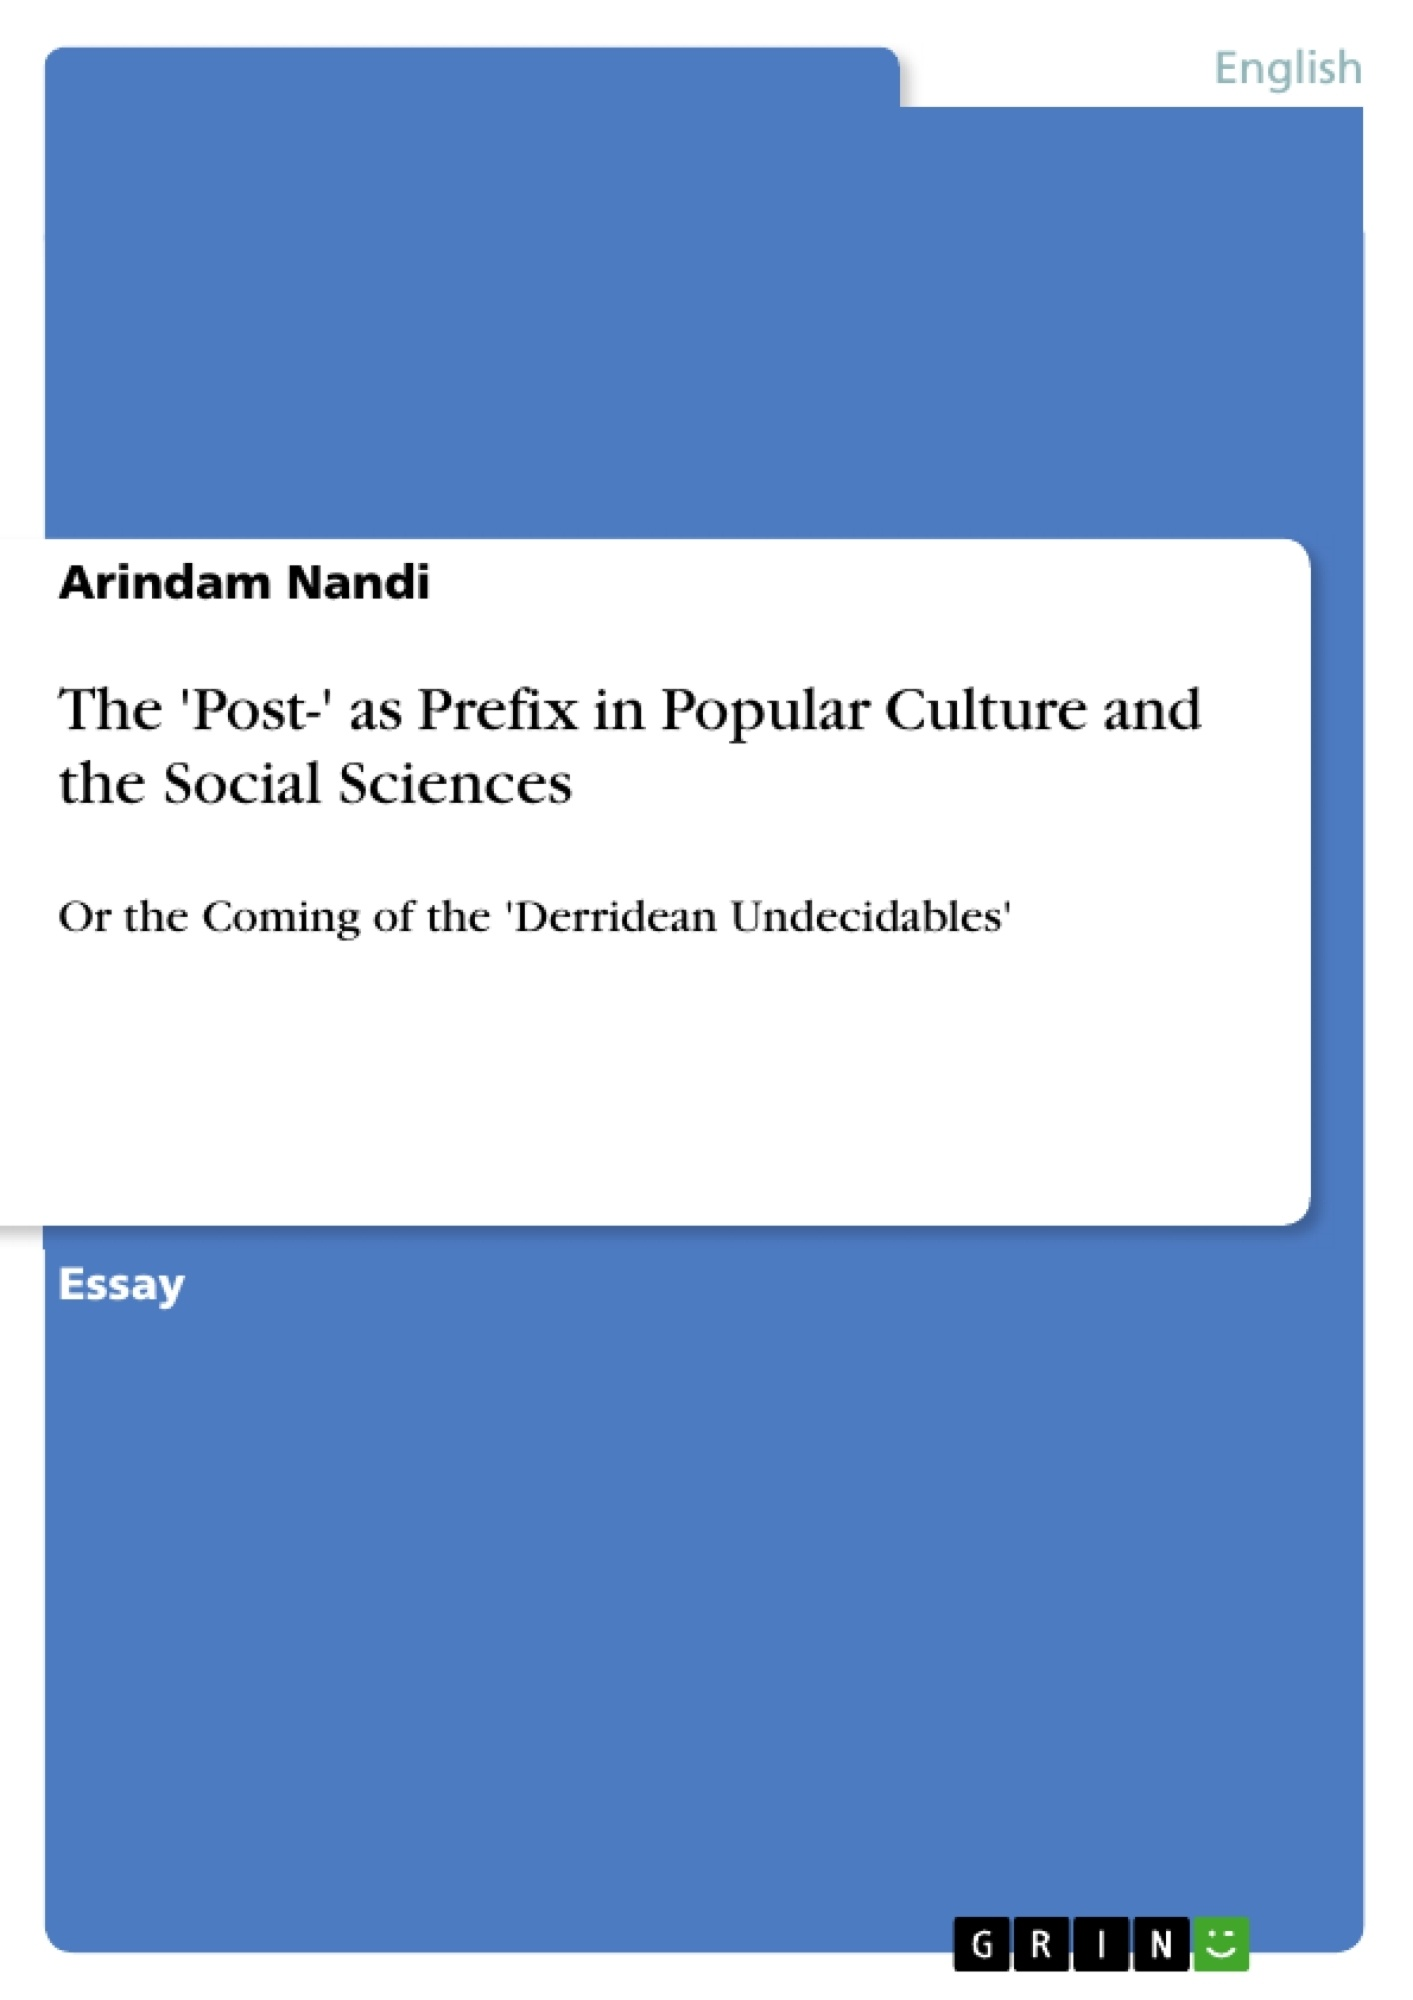 Title: The 'Post-' as Prefix in Popular Culture and the Social Sciences